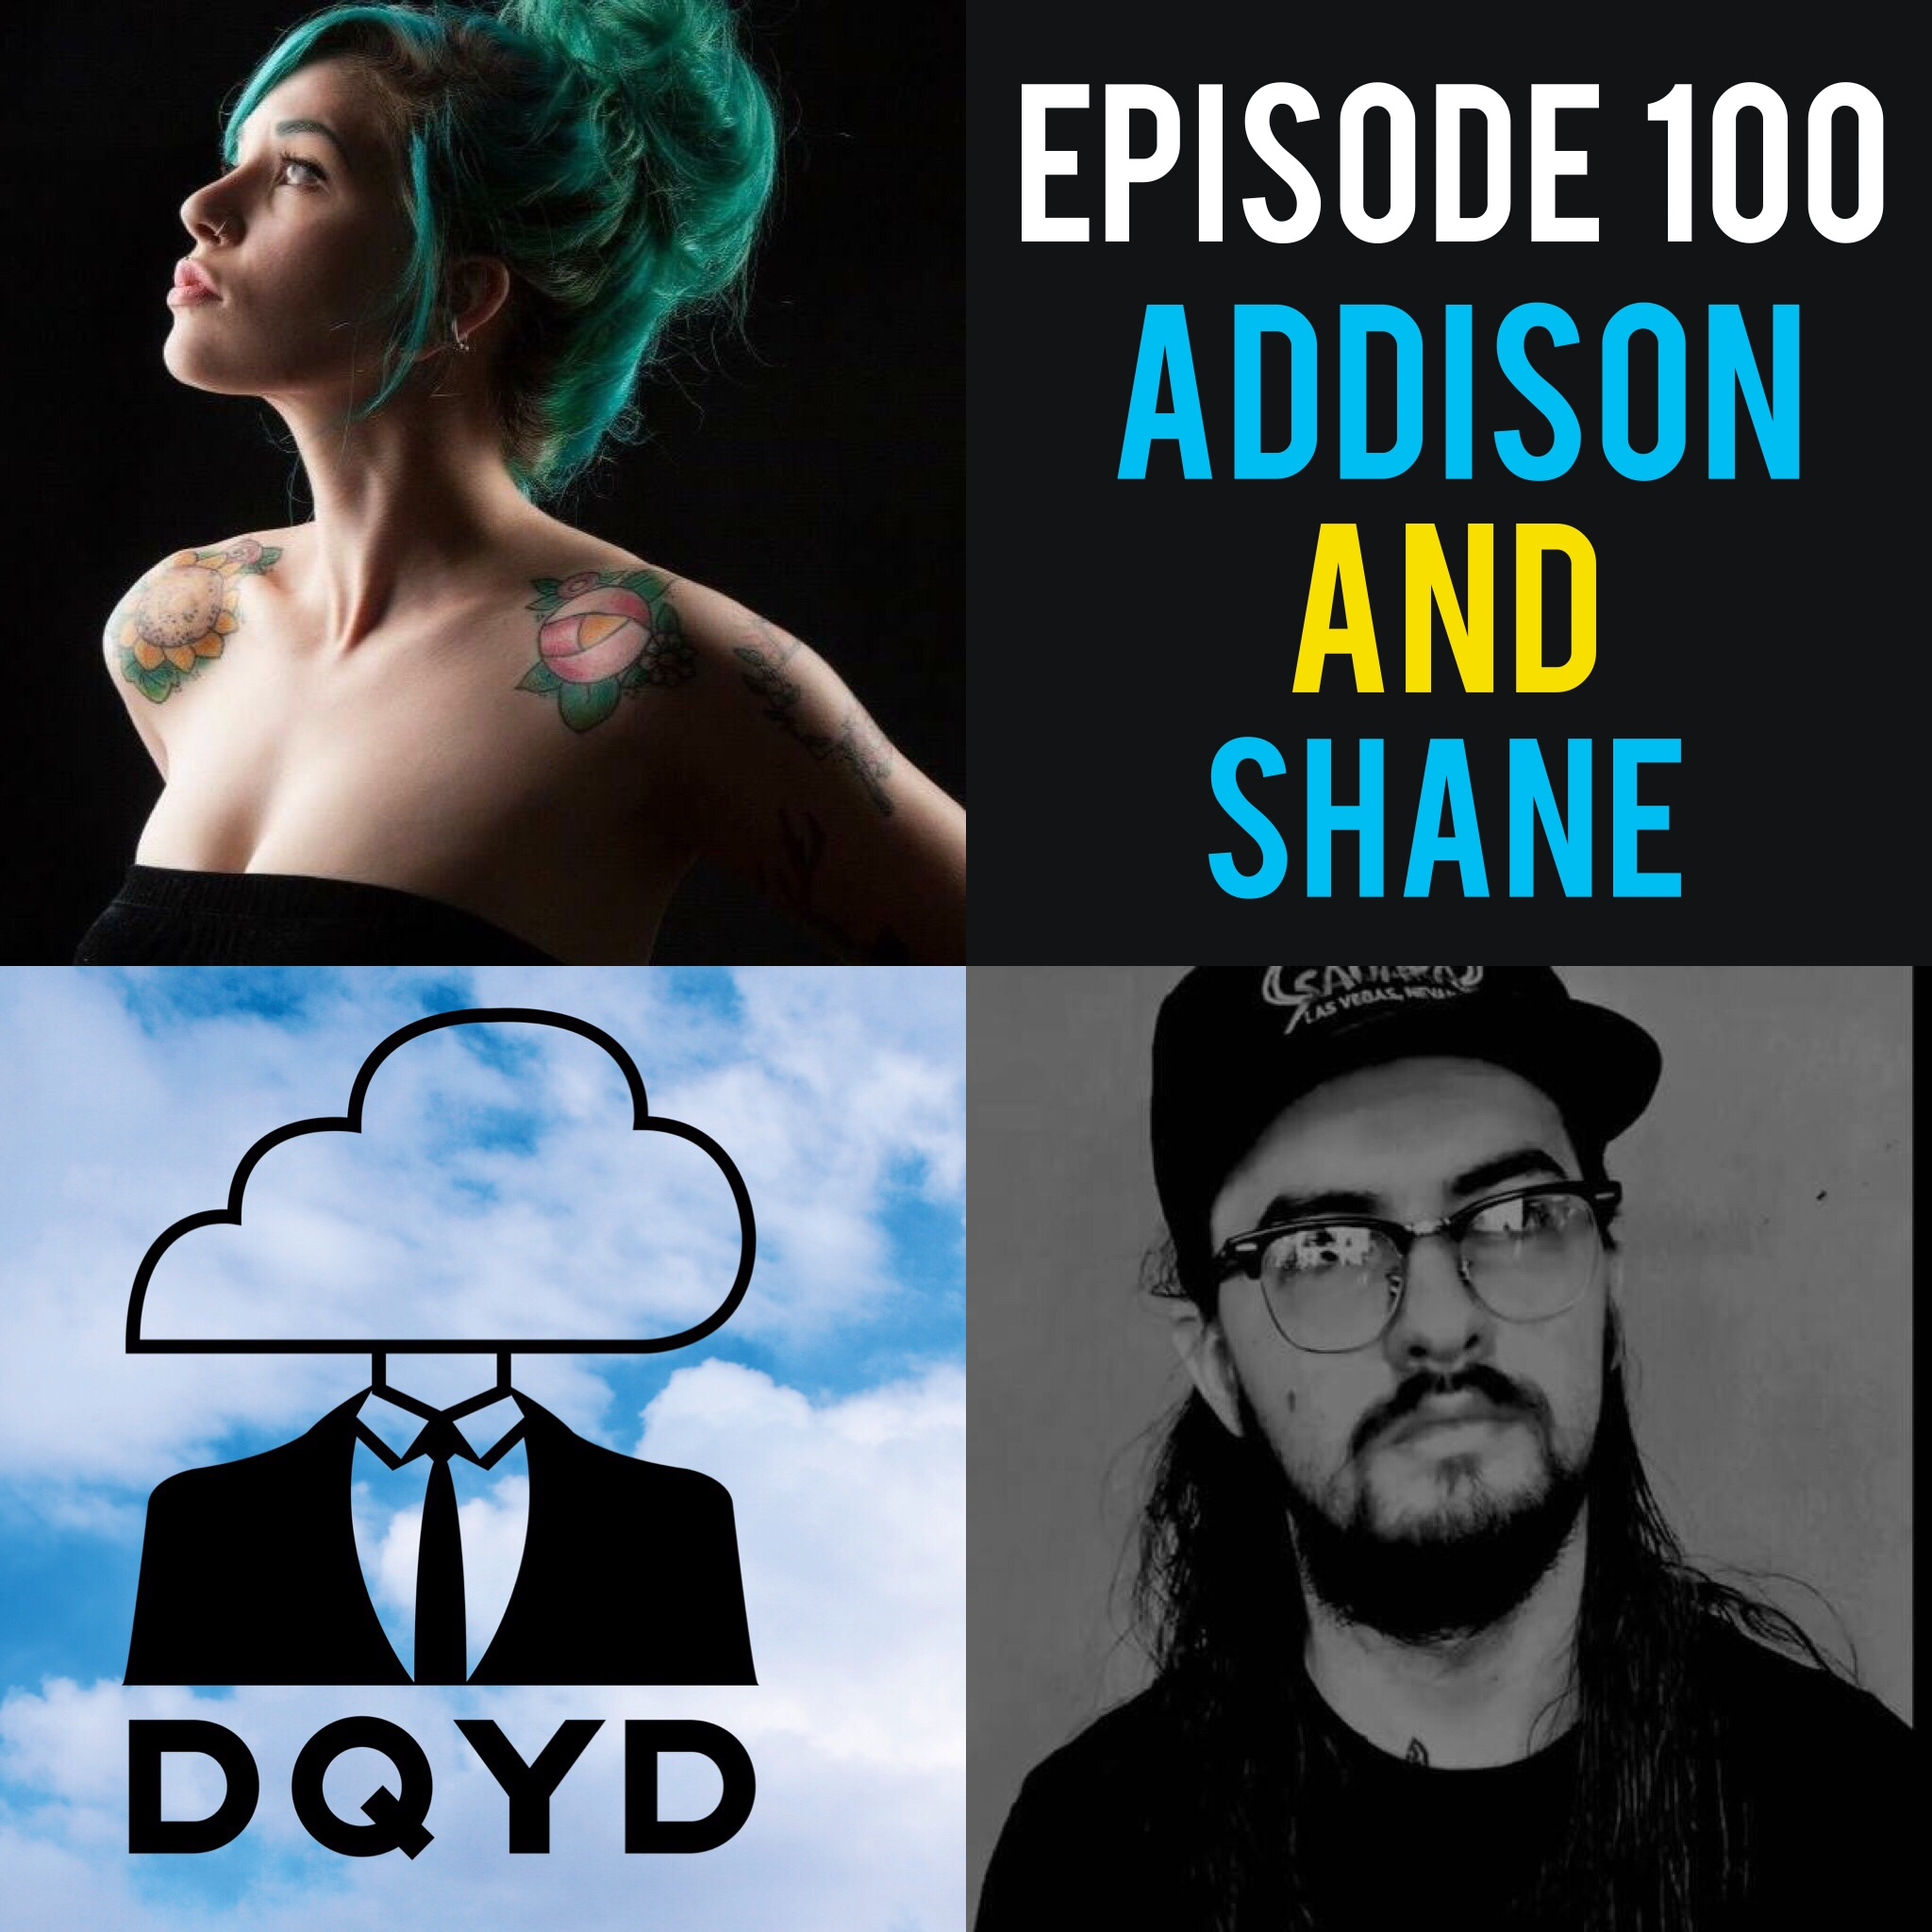 Episode 100 with Tattoo Artists: Addison Edge & Shane Klos! Episode 100 is here and what better way to celebrate than bringing back some of our favorite previous guests? Addie and Shane have been standouts of the Evansville tattoo community for several years now and have collected tons of hilarious stories along the way. Help us celebrate our milestone!  Song of the Week is Fake Plants by Suncoast Ultra!